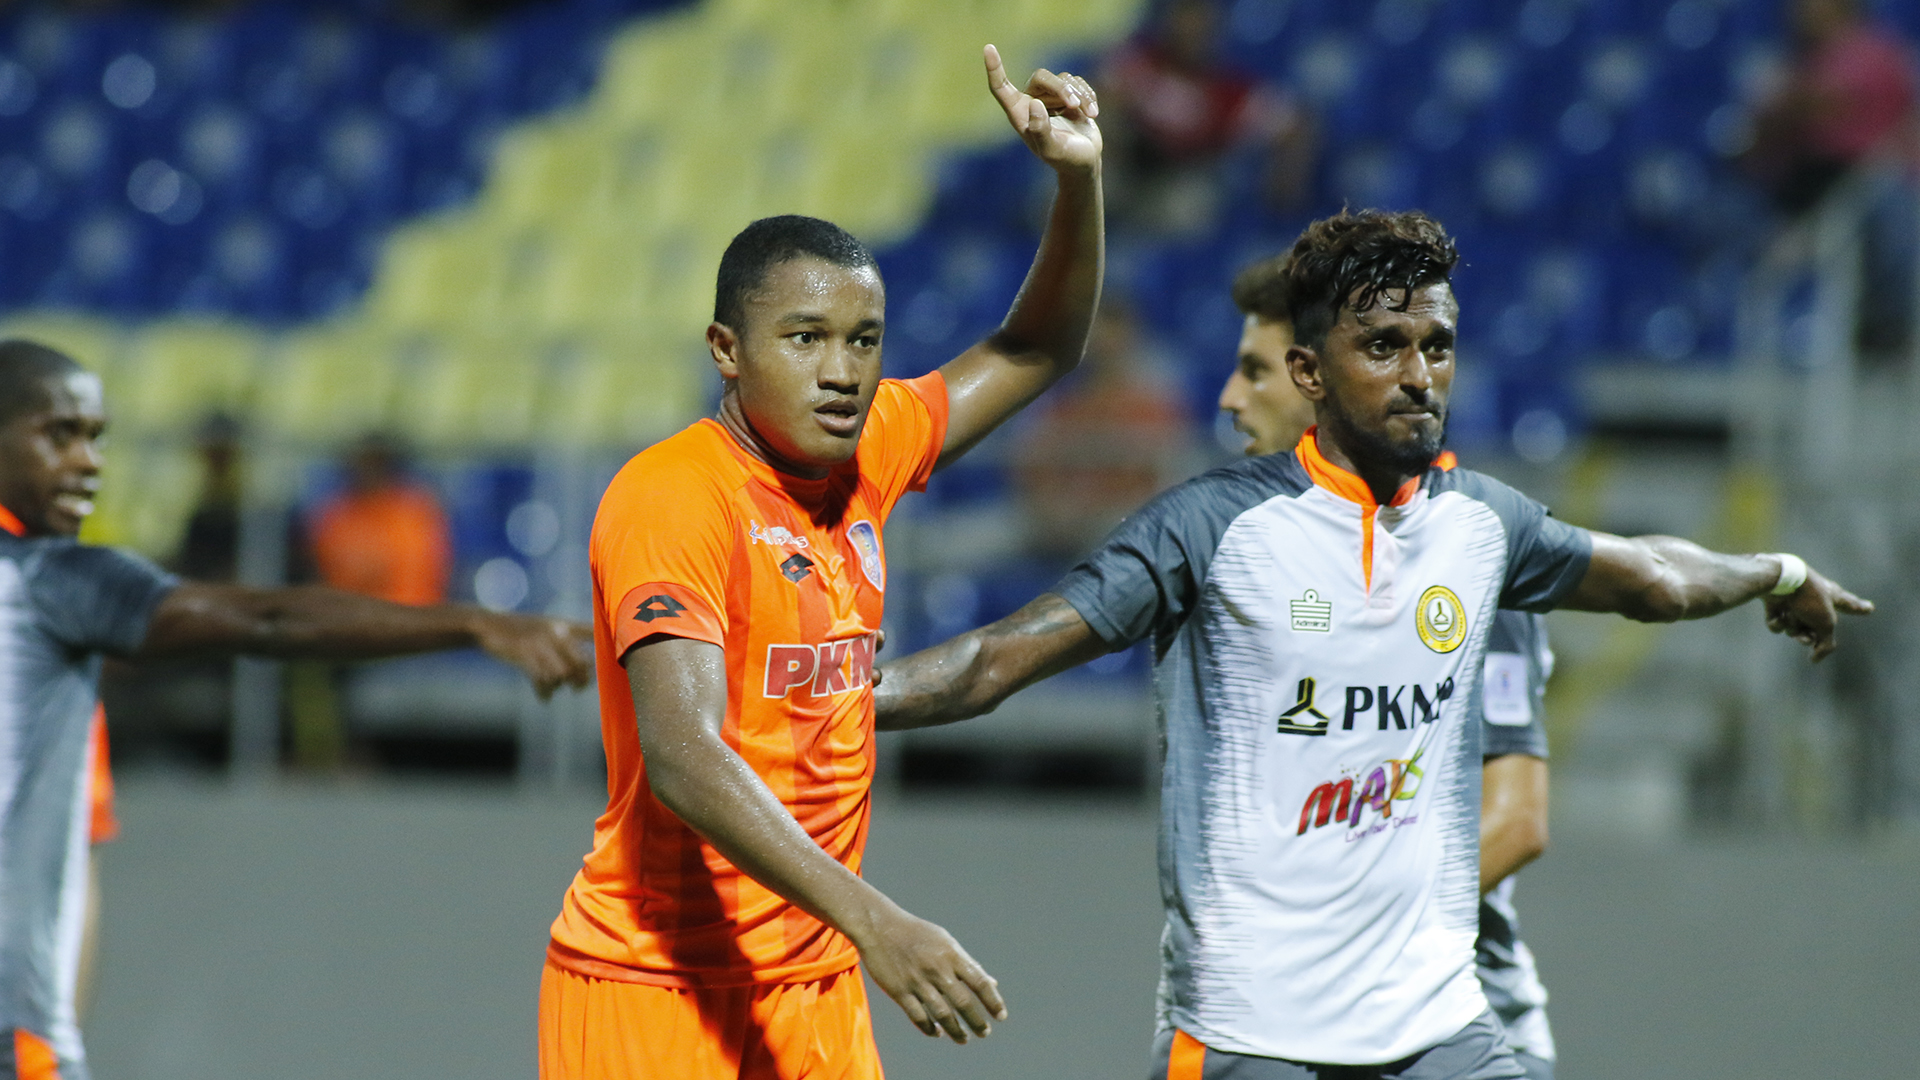 Rodney Akwensivie, PKNP FC v PKNS FC, Malaysia Super League, 25 Jun 2019